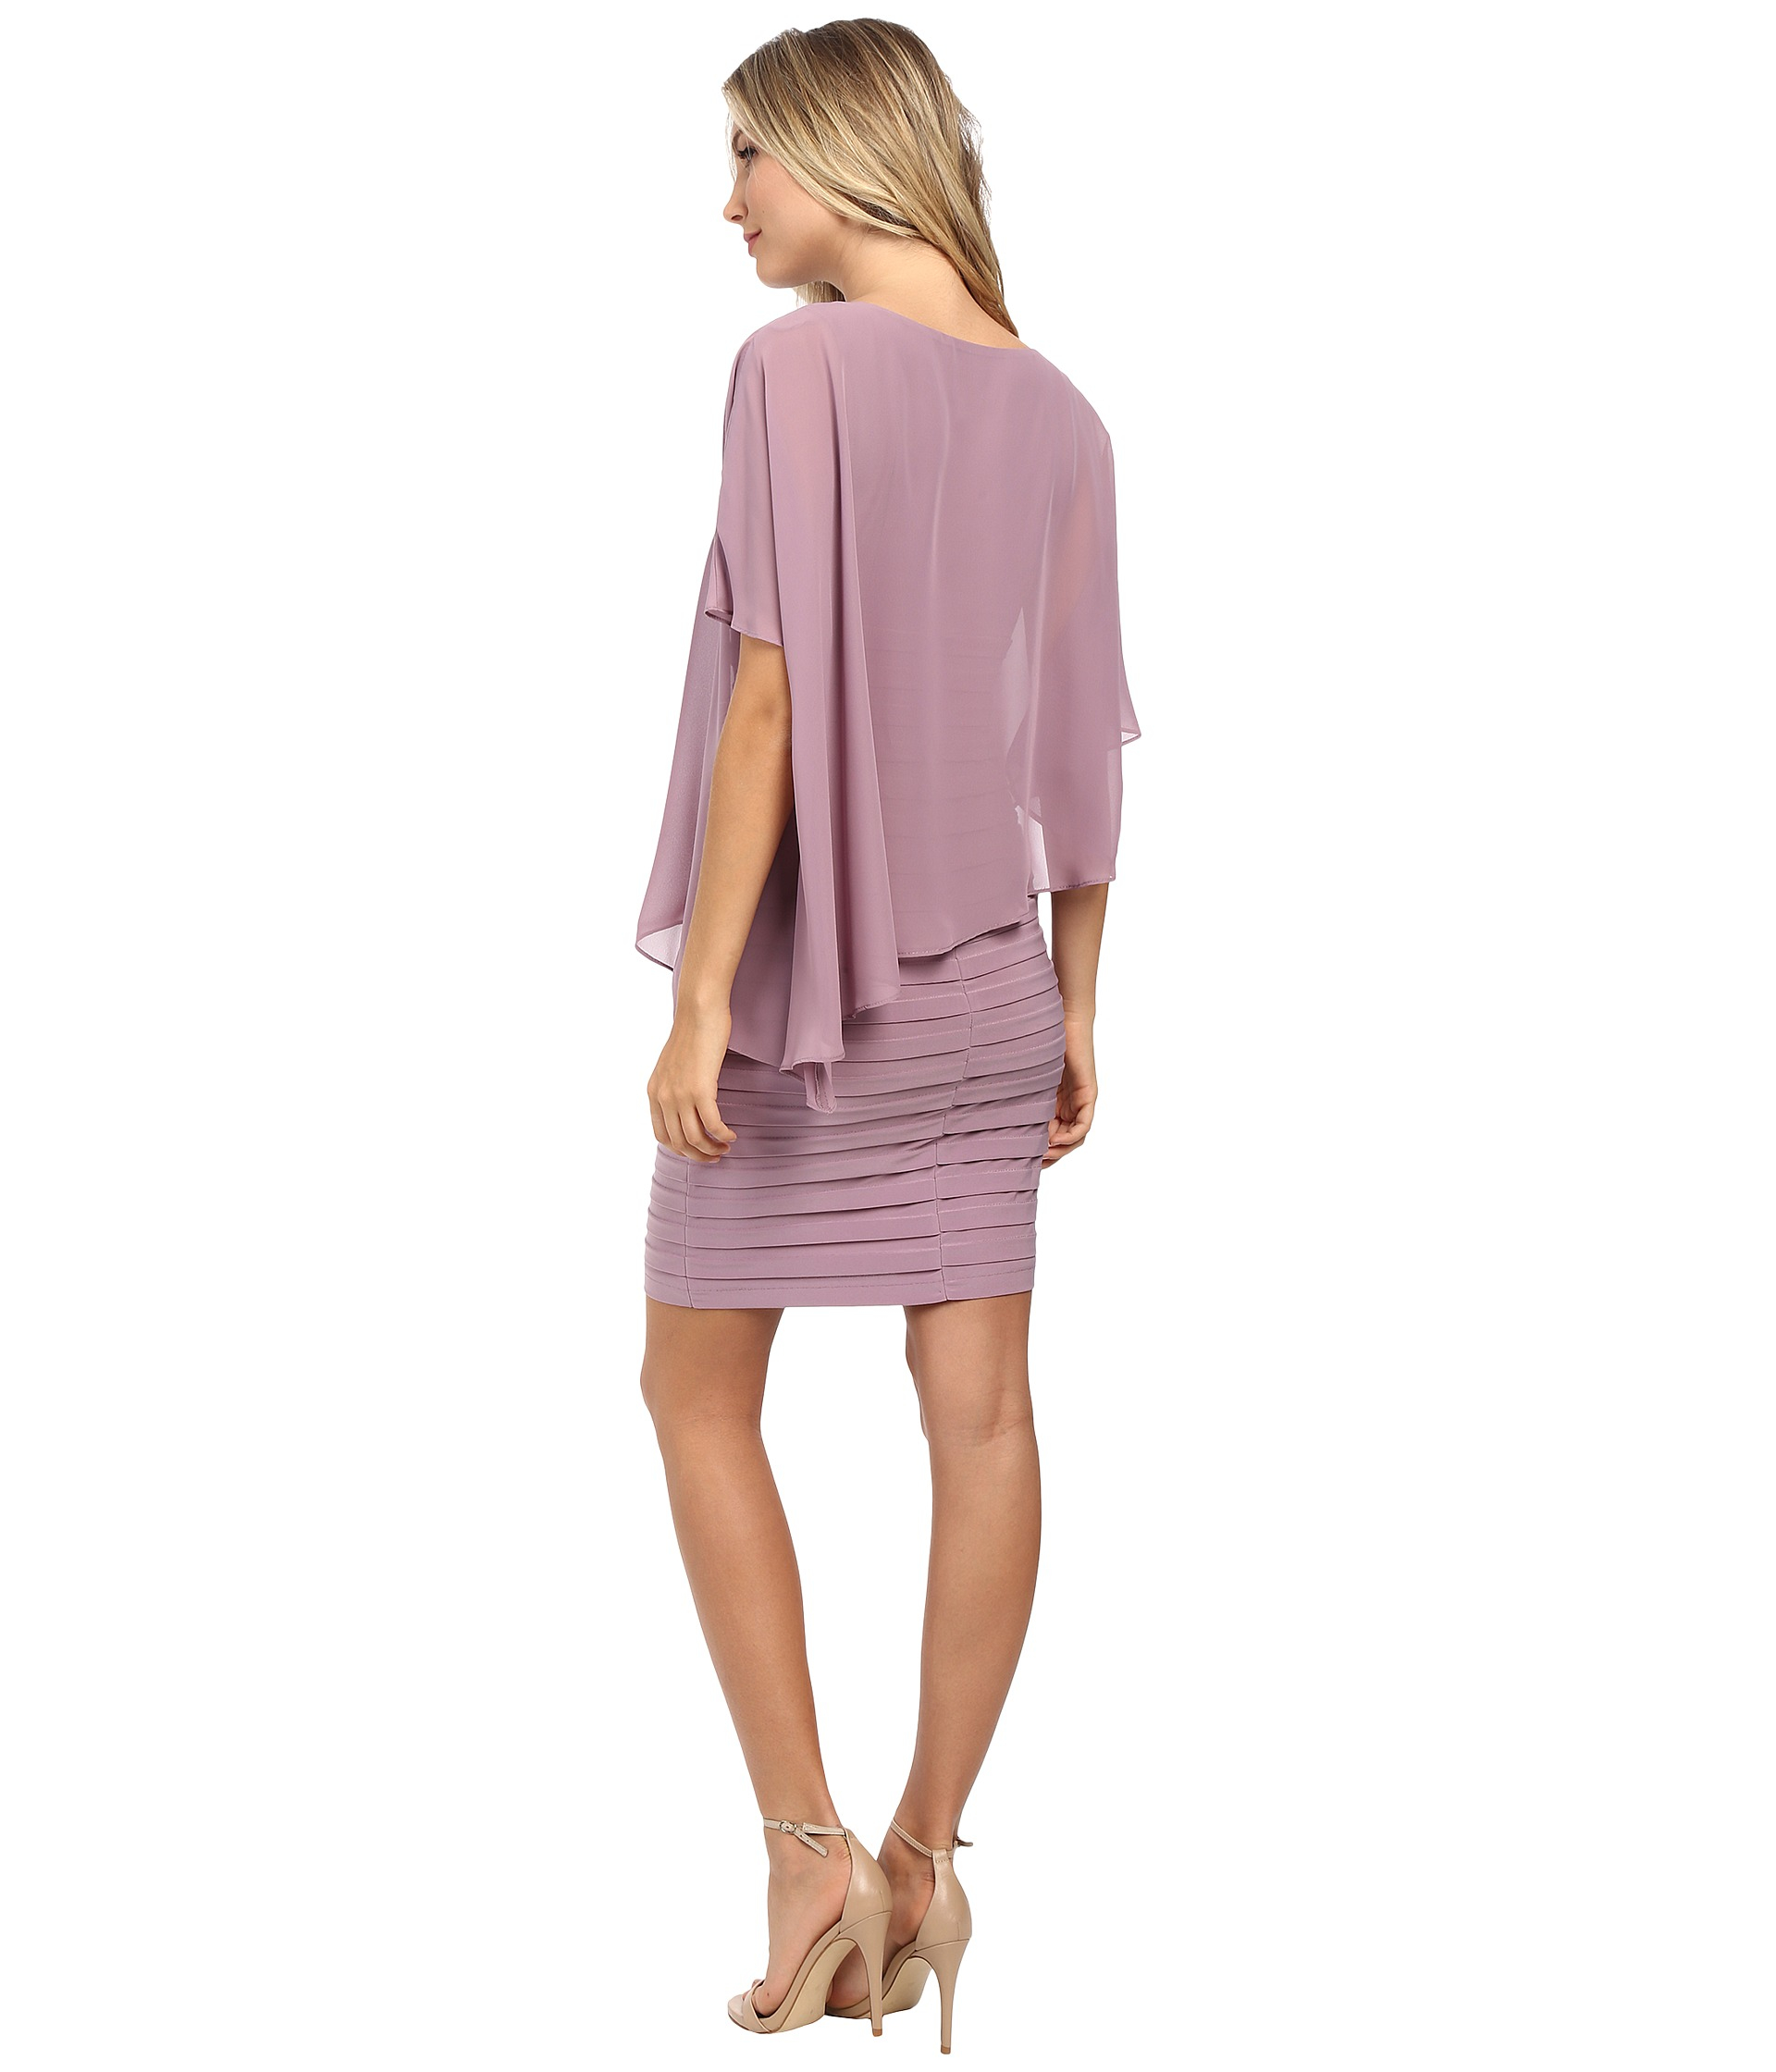 9fbd9752fbde Adrianna Papell Chiffon Drape Overlay With Banding in Pink - Lyst